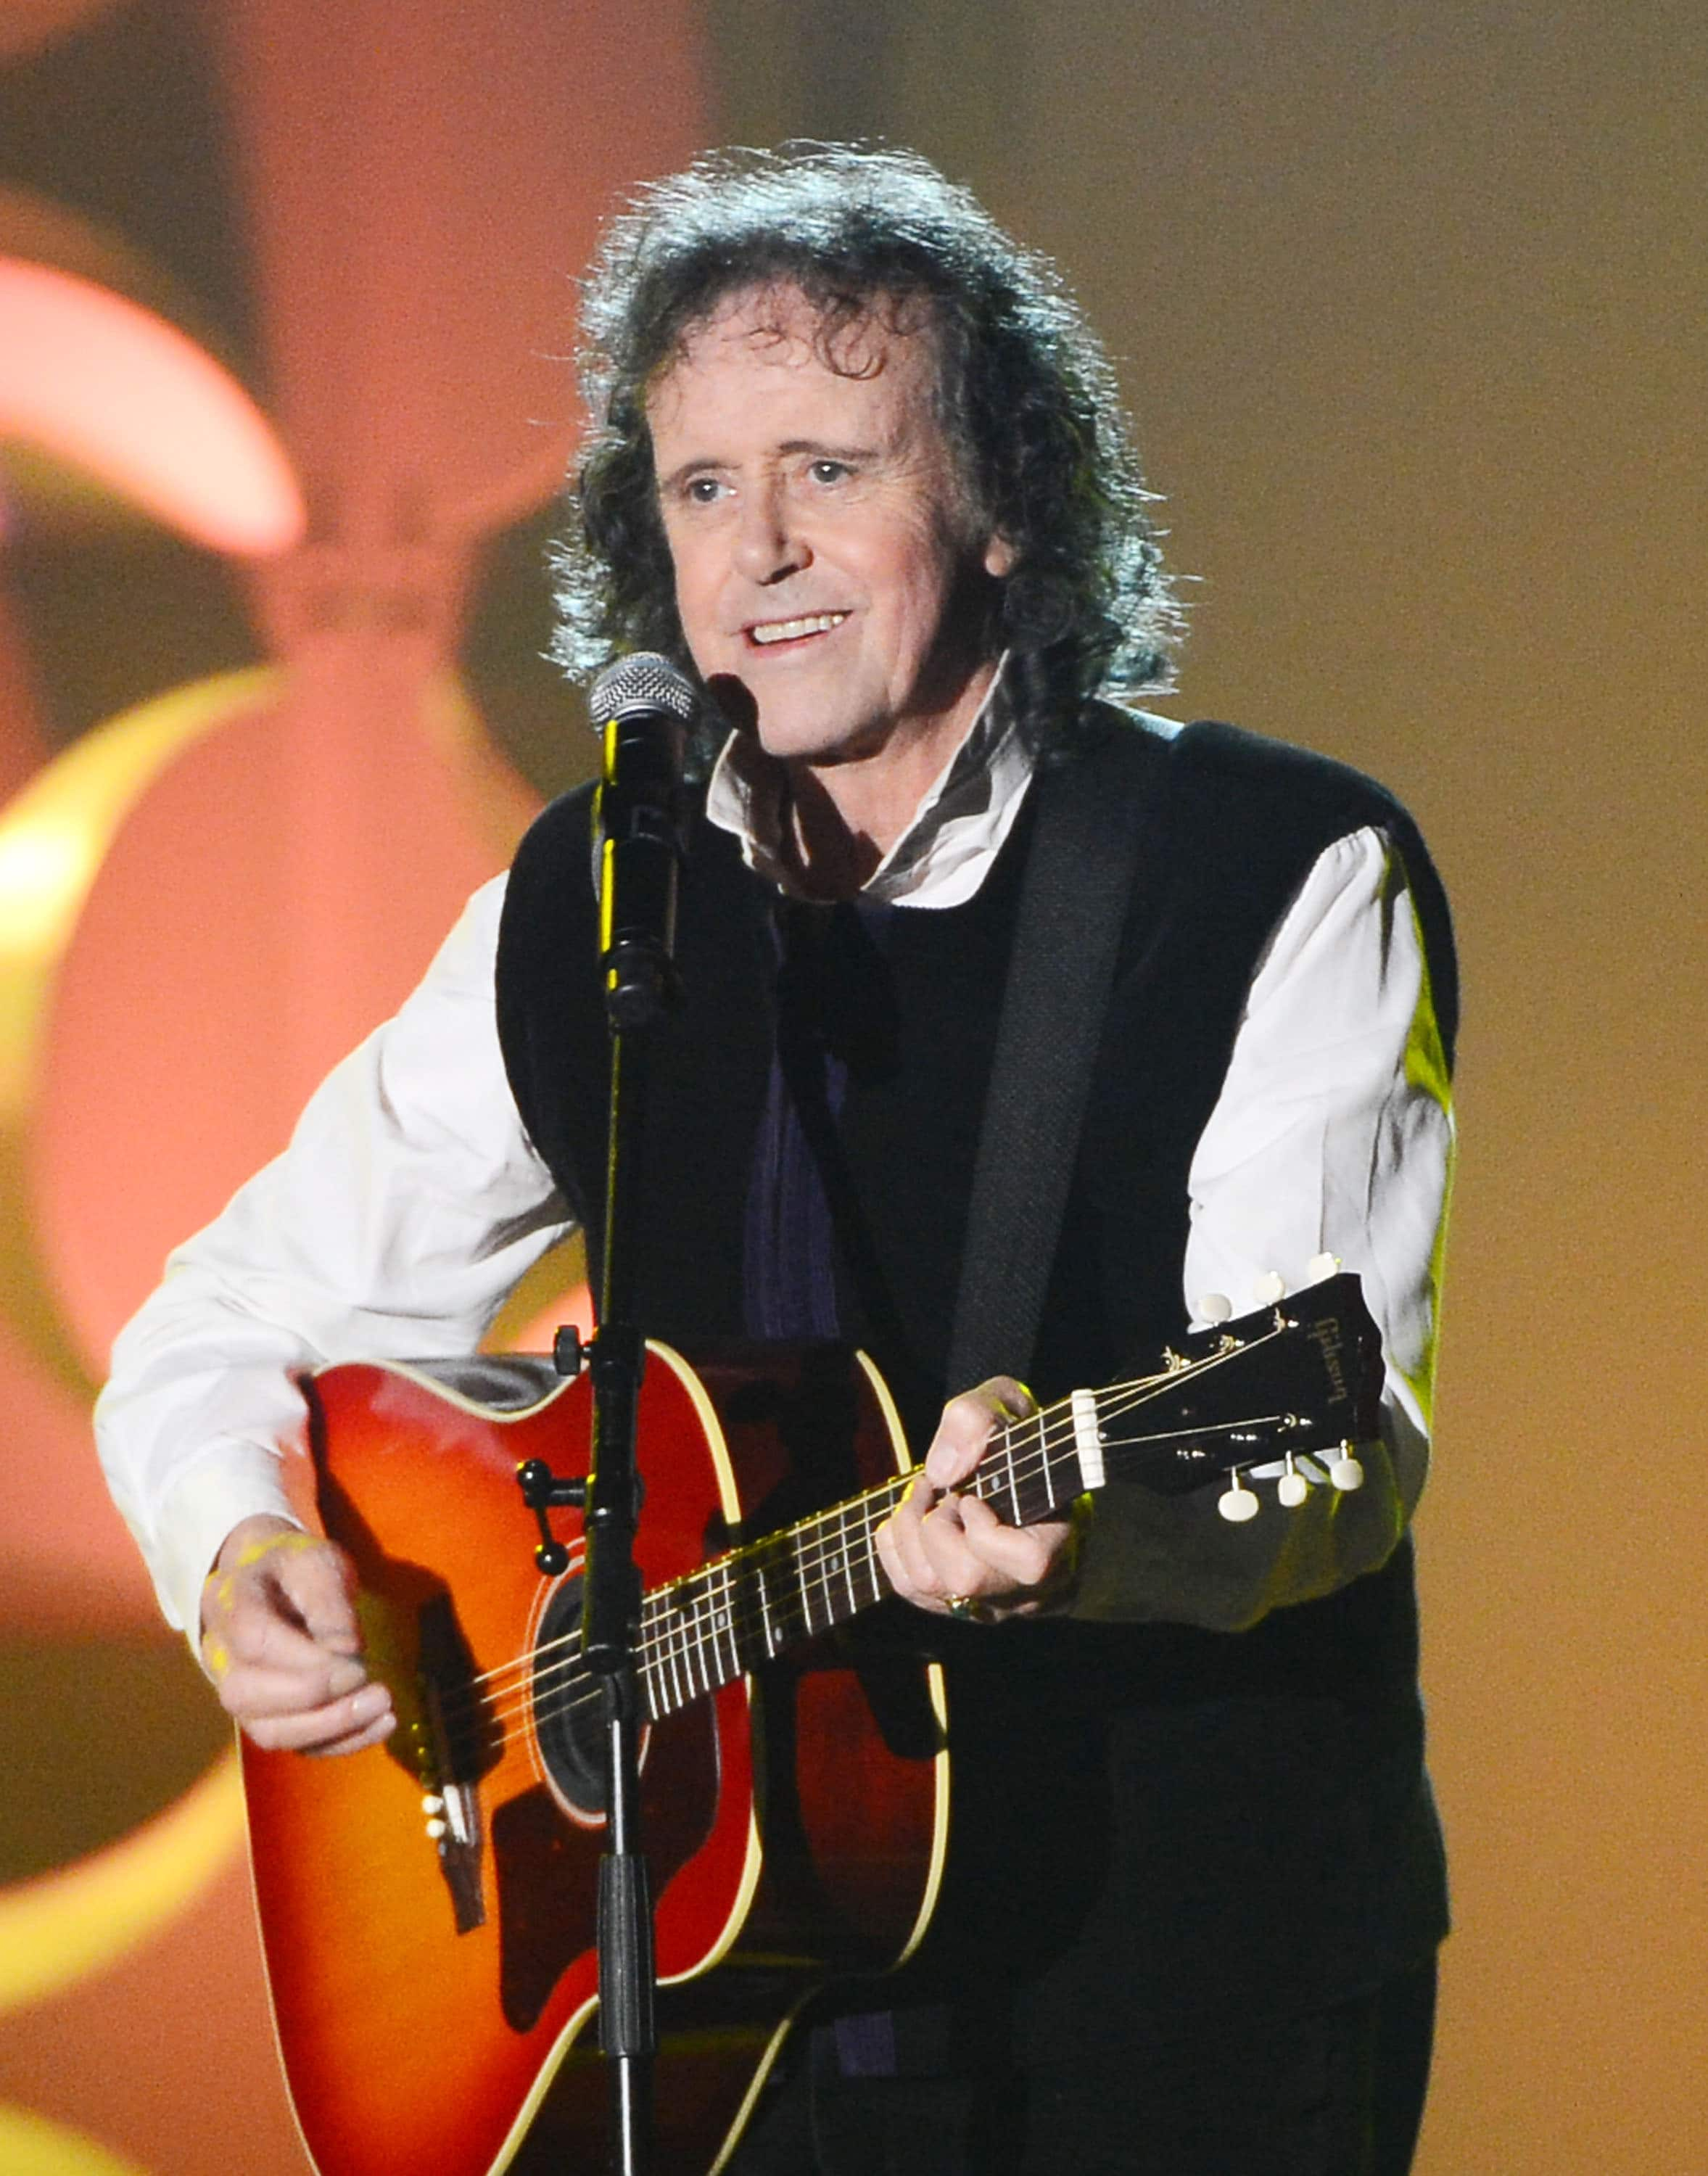 The 2014 Songwriters Hall of Fame Awards